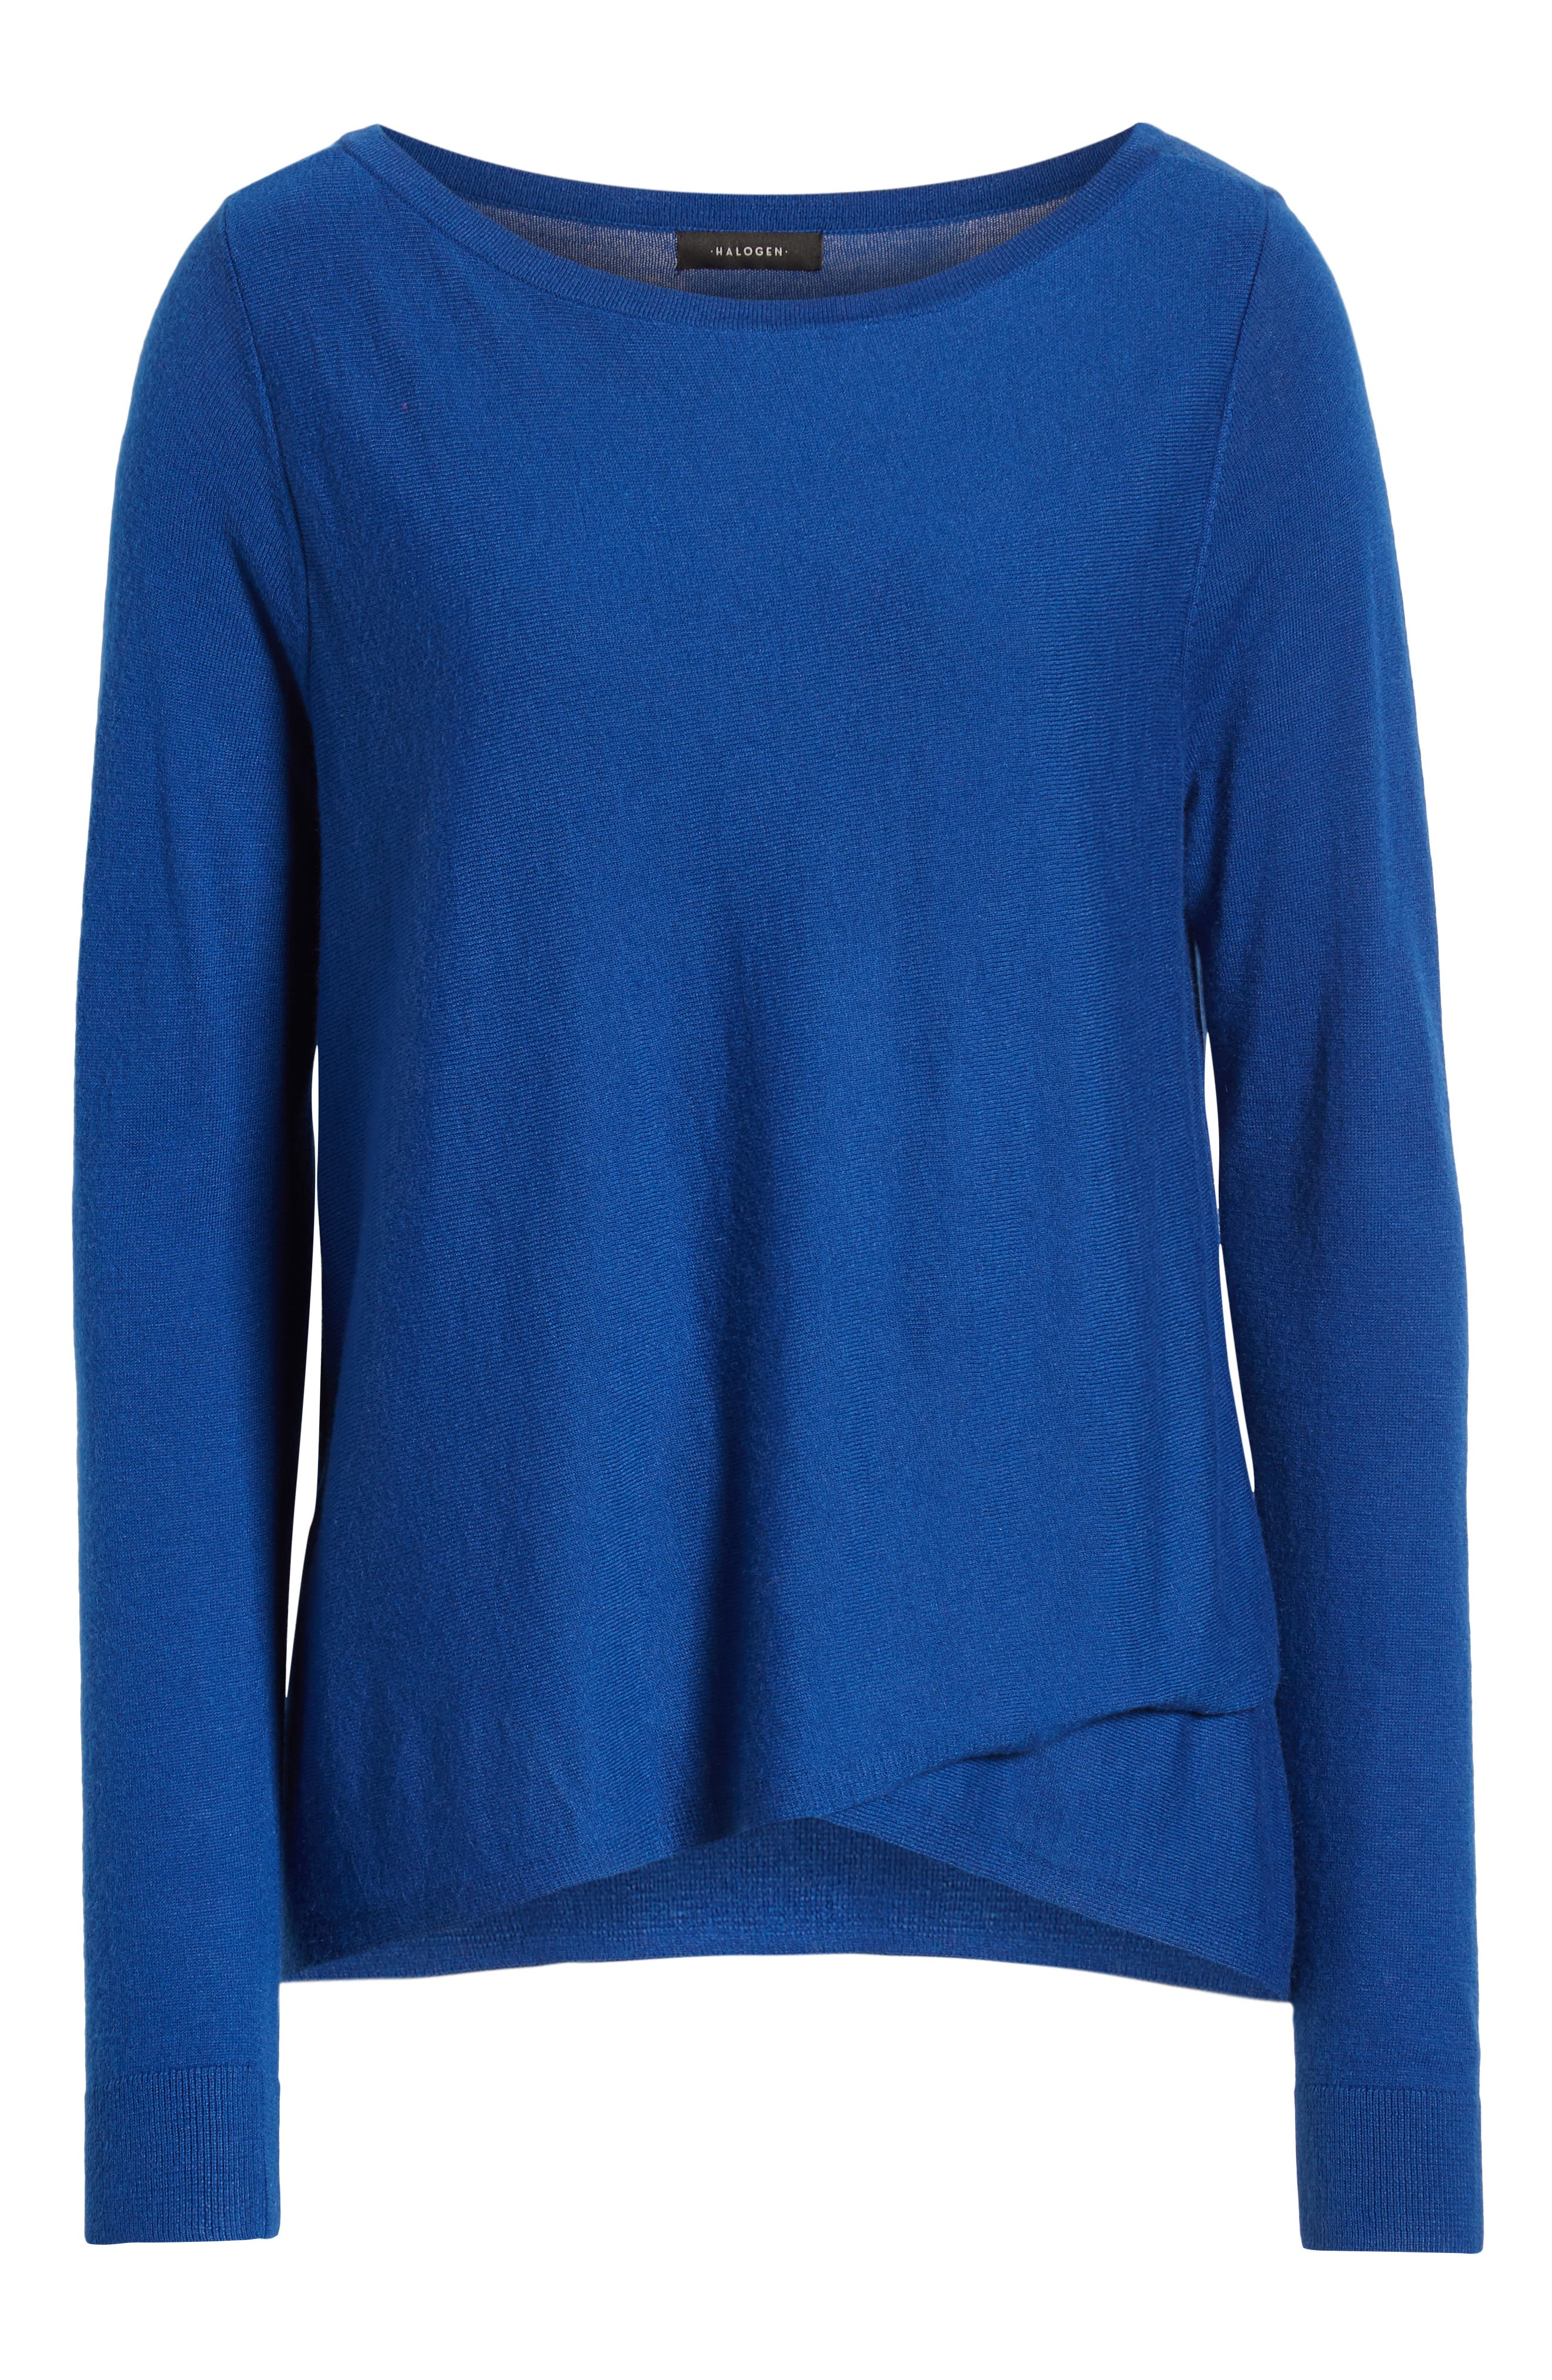 HALOGEN<SUP>®</SUP>, Crossover Front Knit Sweater, Alternate thumbnail 6, color, BLUE MAZARINE